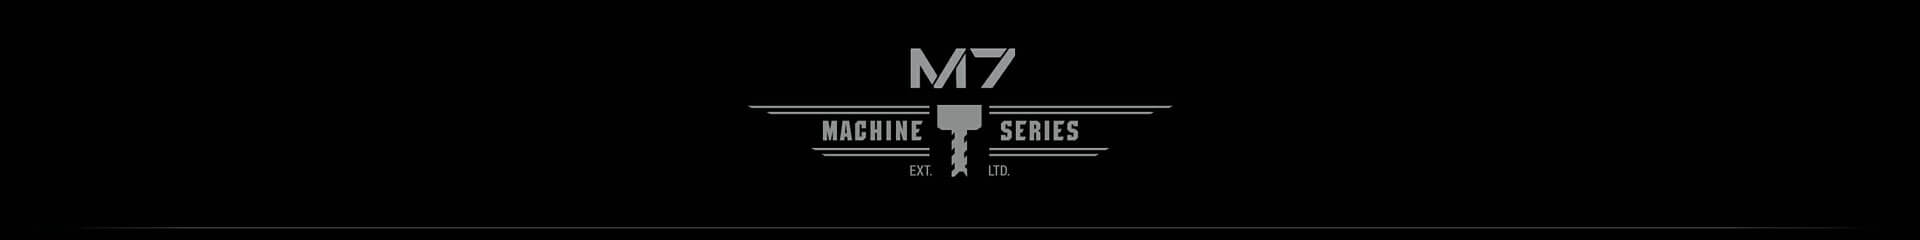 M7 Machine Series